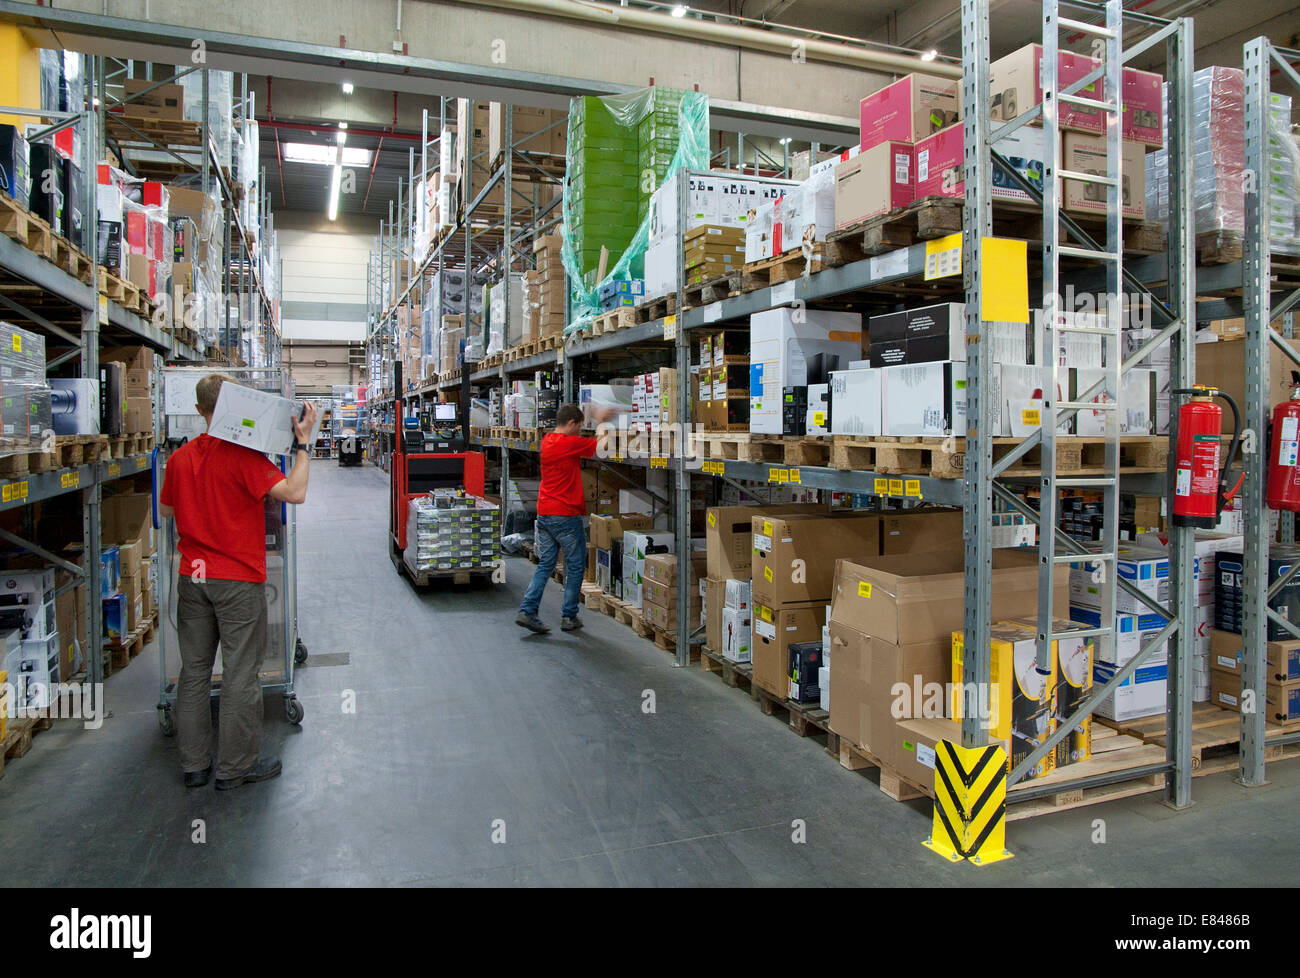 Two workers in a warehouse with high shelves. - Stock Image